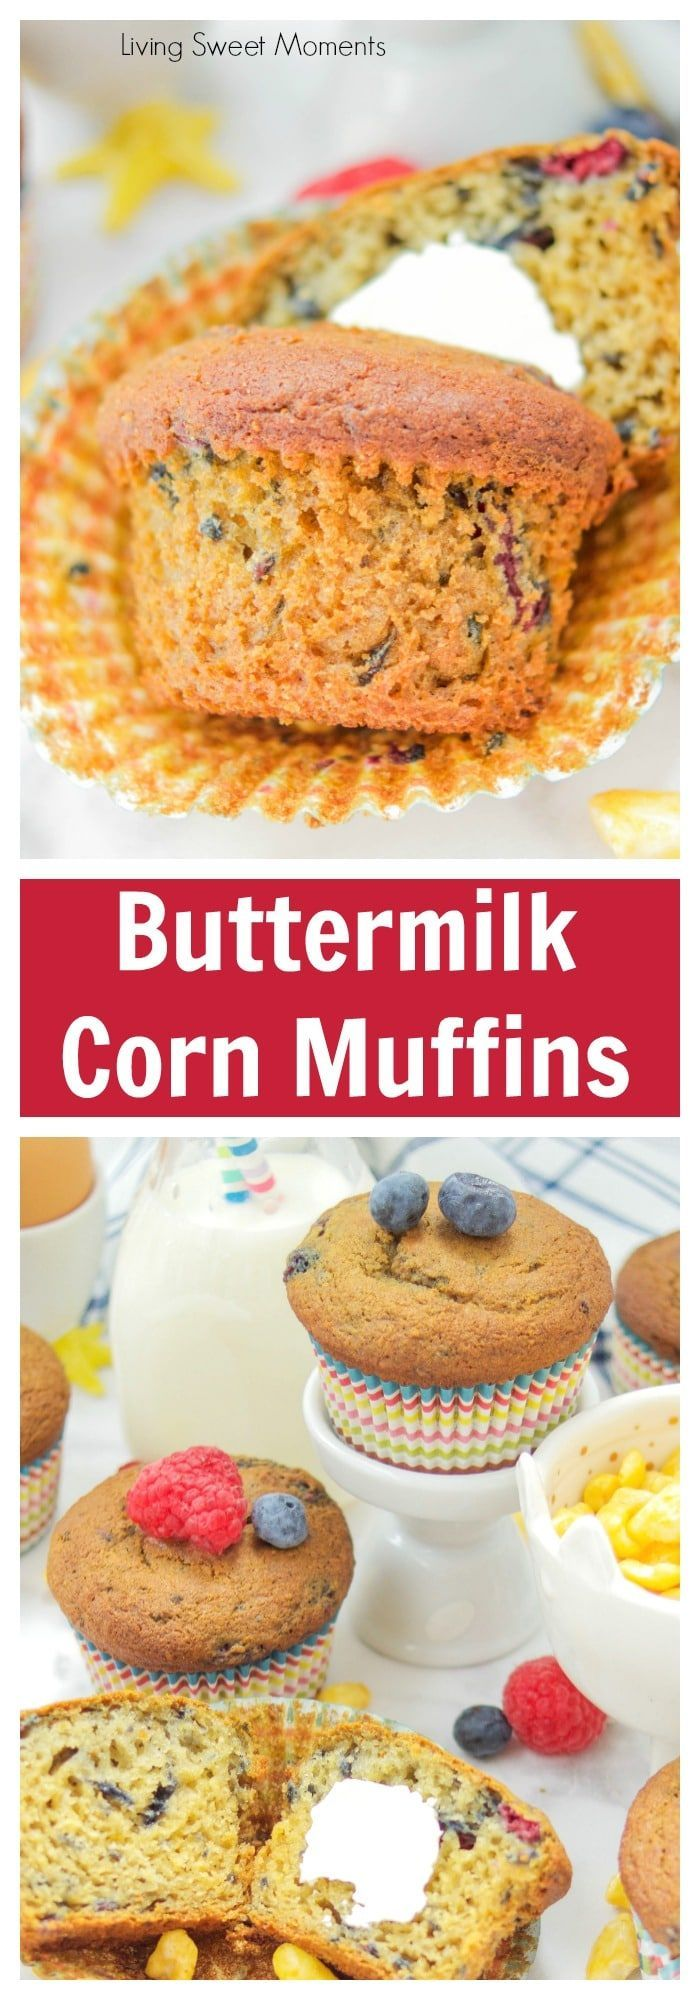 These Moist Buttermilk Corn Muffins are made with Kellogg's Corn Pops cereal to give it a distinct taste and sweetness. Perfect for breakfast & Snack time! More back to school recipes livingsweetmoments.com  via @Livingsmoments #ad #KelloggsBTS